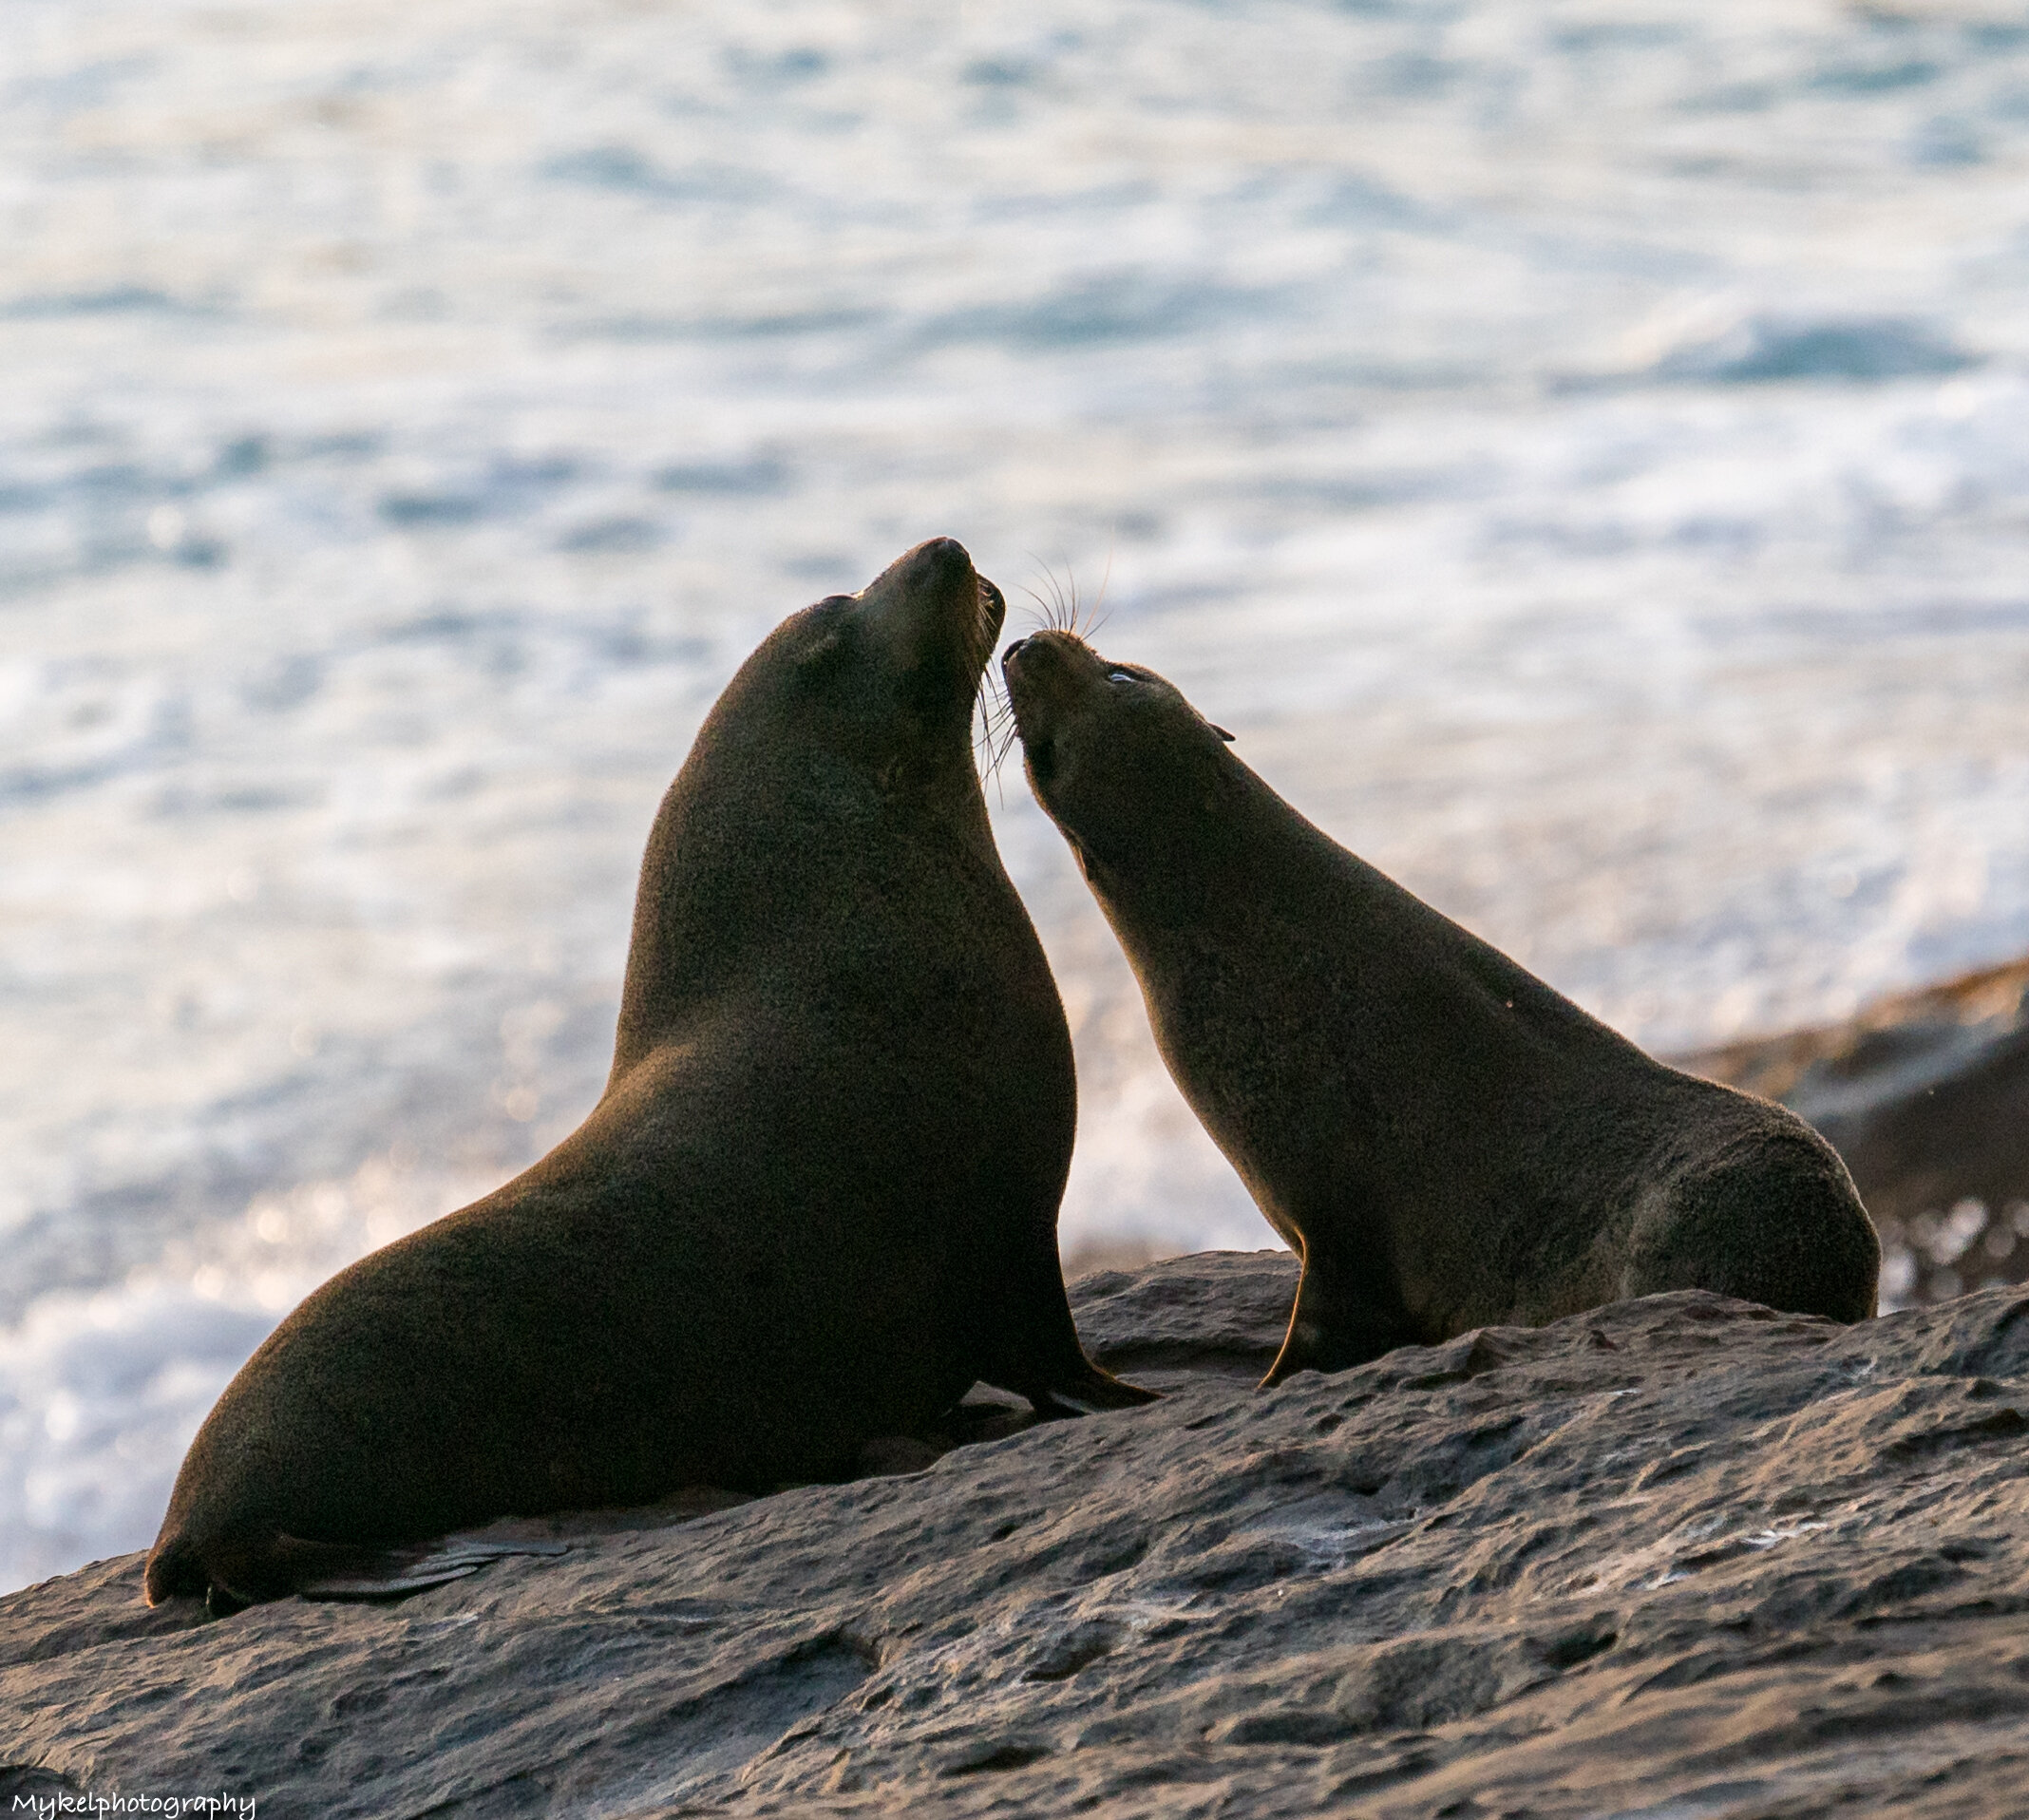 Fur-seals often play among the rocks. These dark brown seals feed at sea but return to land to rest and breed. In summer, each of the large males establishes a territory with a number of females.